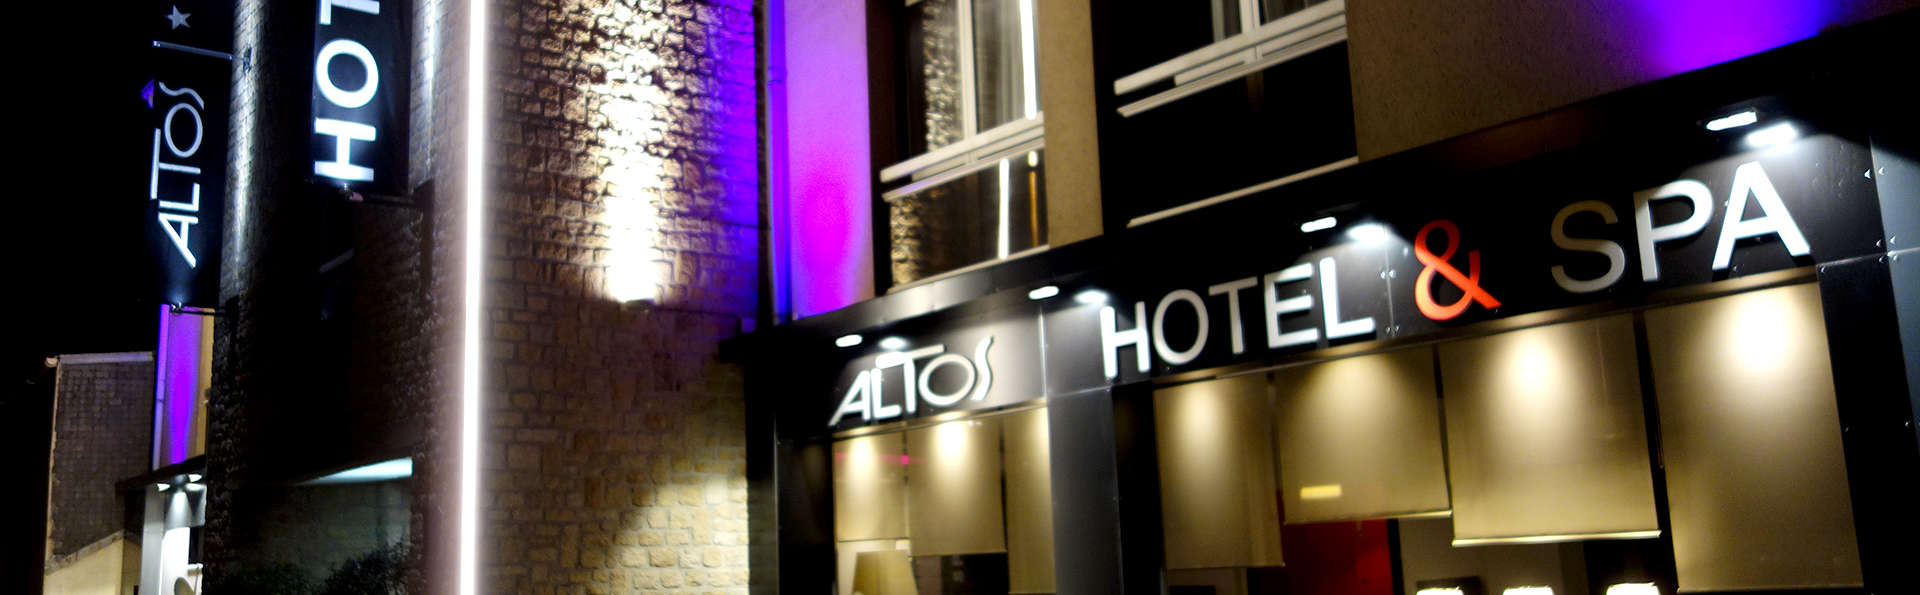 Altos Hôtel & Spa - Edit_Front2.jpg